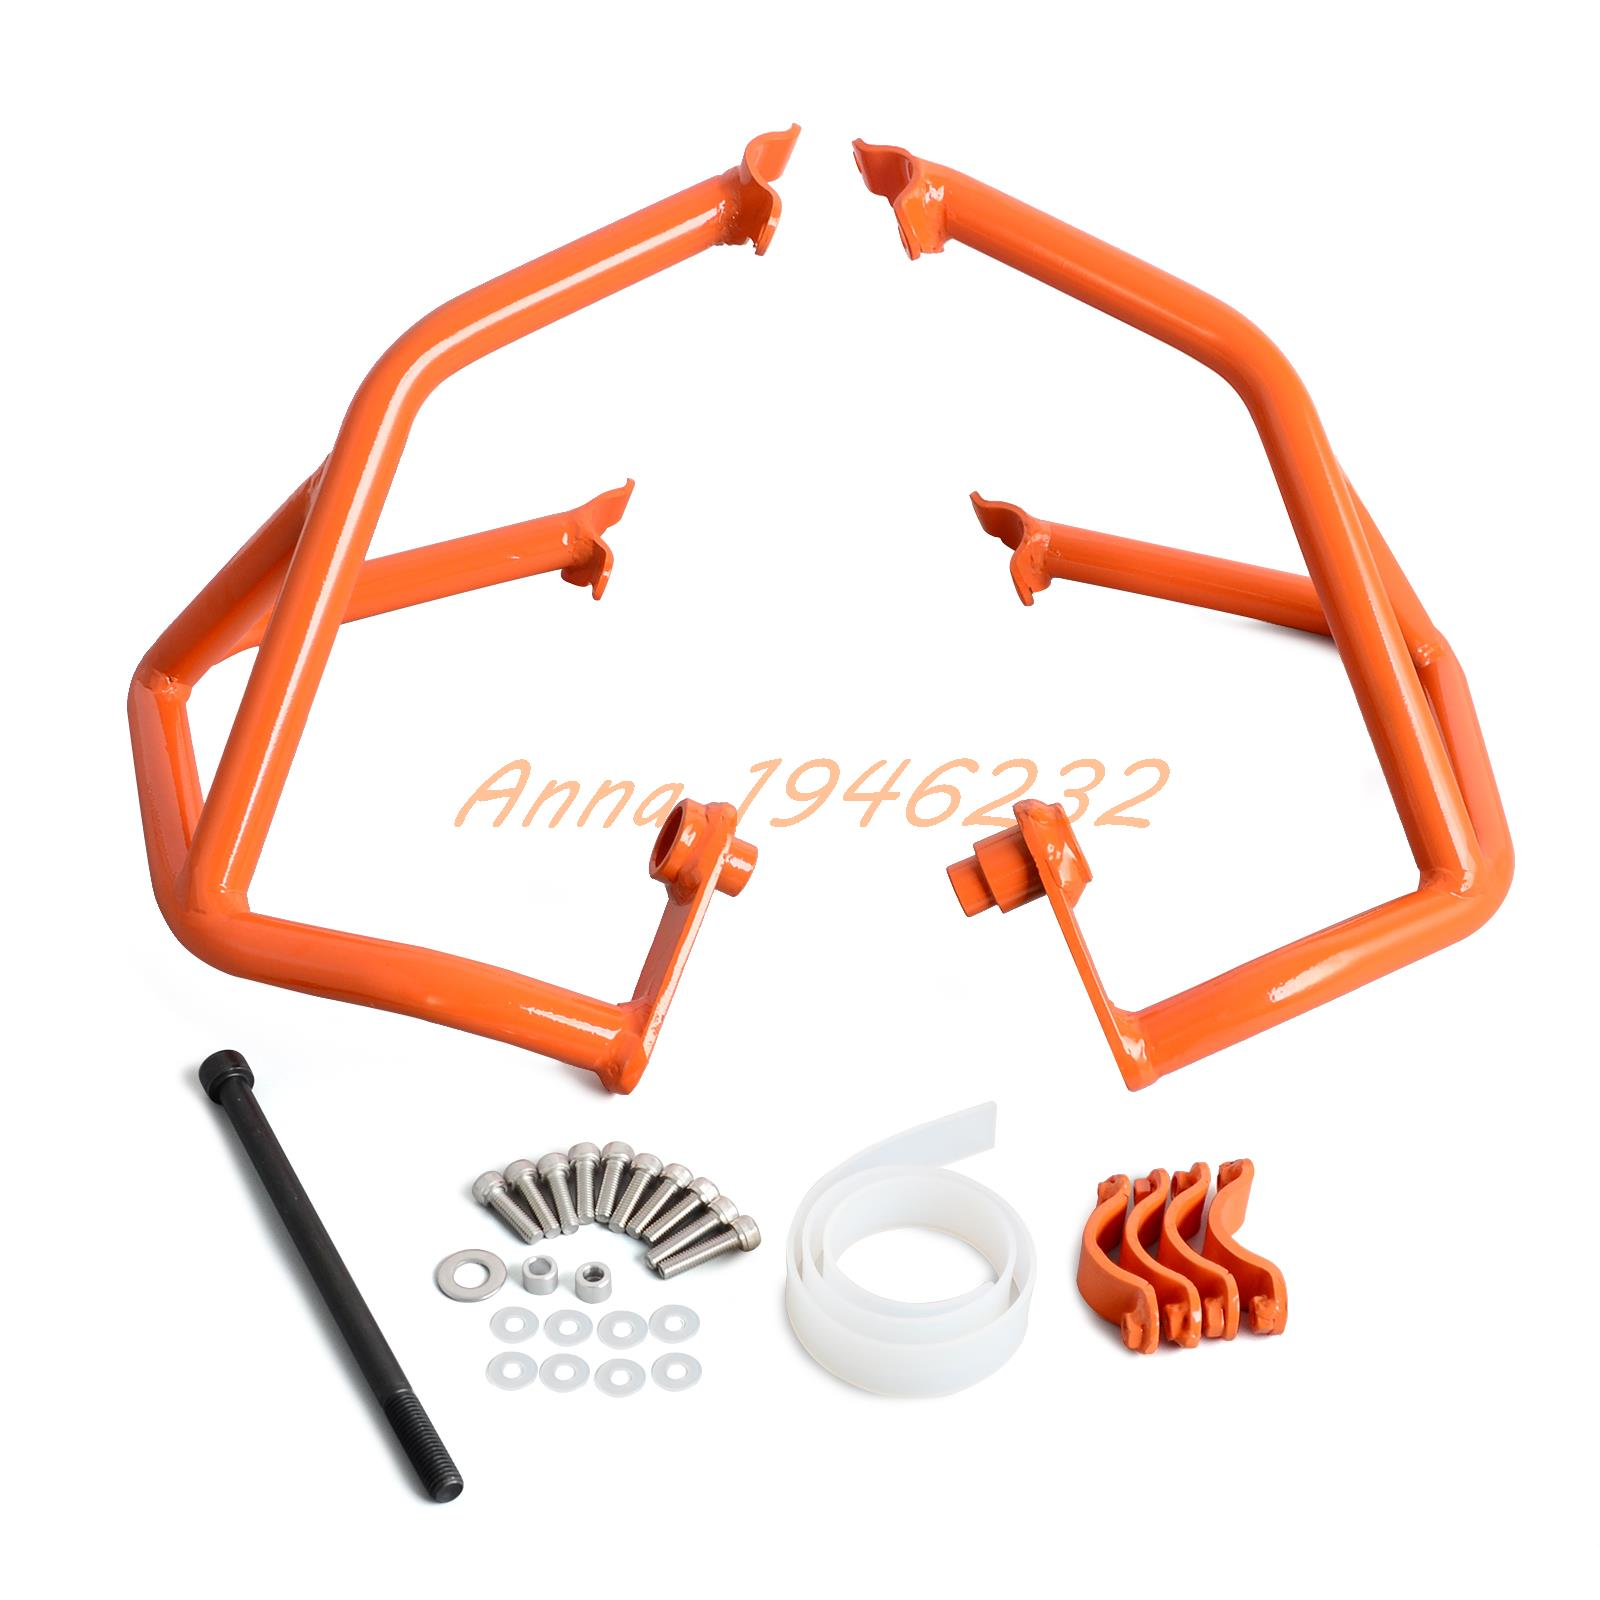 Motorcycle Engine Guards Protector Crash Bars for KTM LC4 690 Duke/R 2012 2013 2014 2015 2016